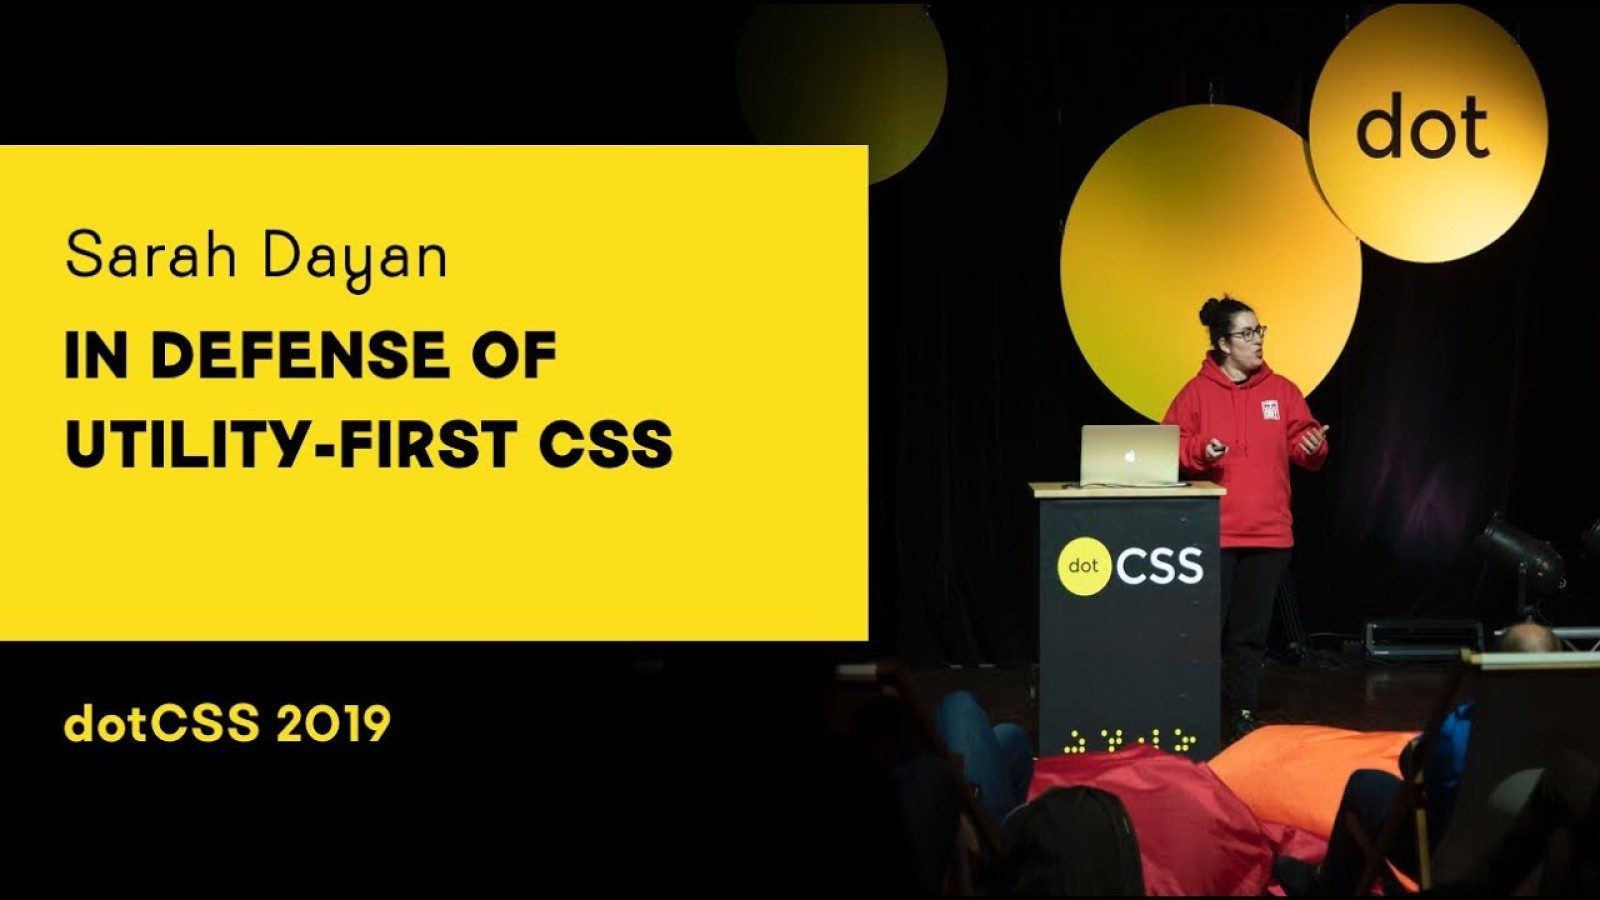 In Defense of Utility-First CSS